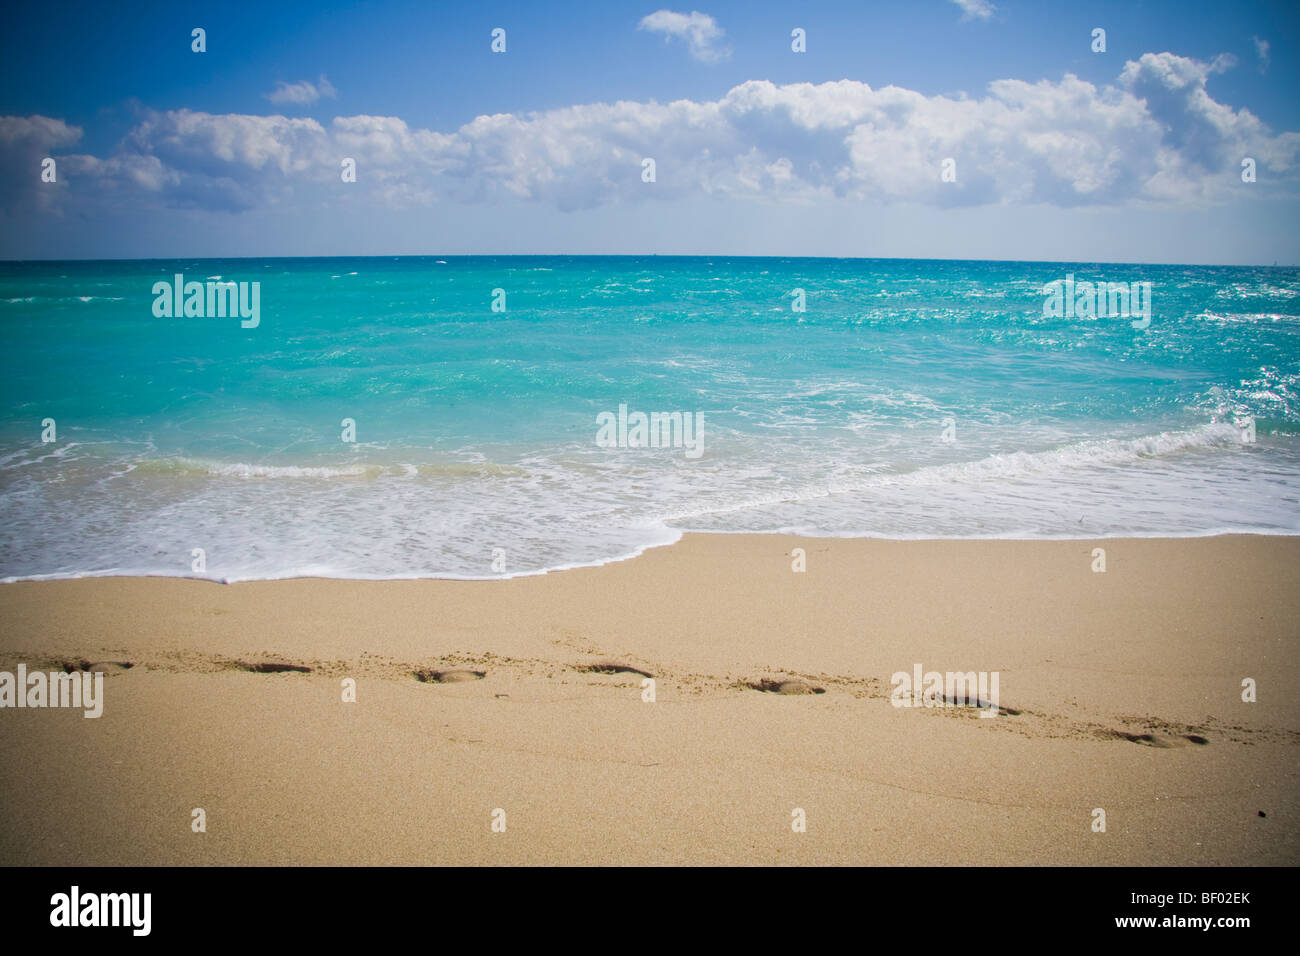 Footprints in sand and stunning blue ocean at Miami beach. South beach Miami Florida USA - Stock Image